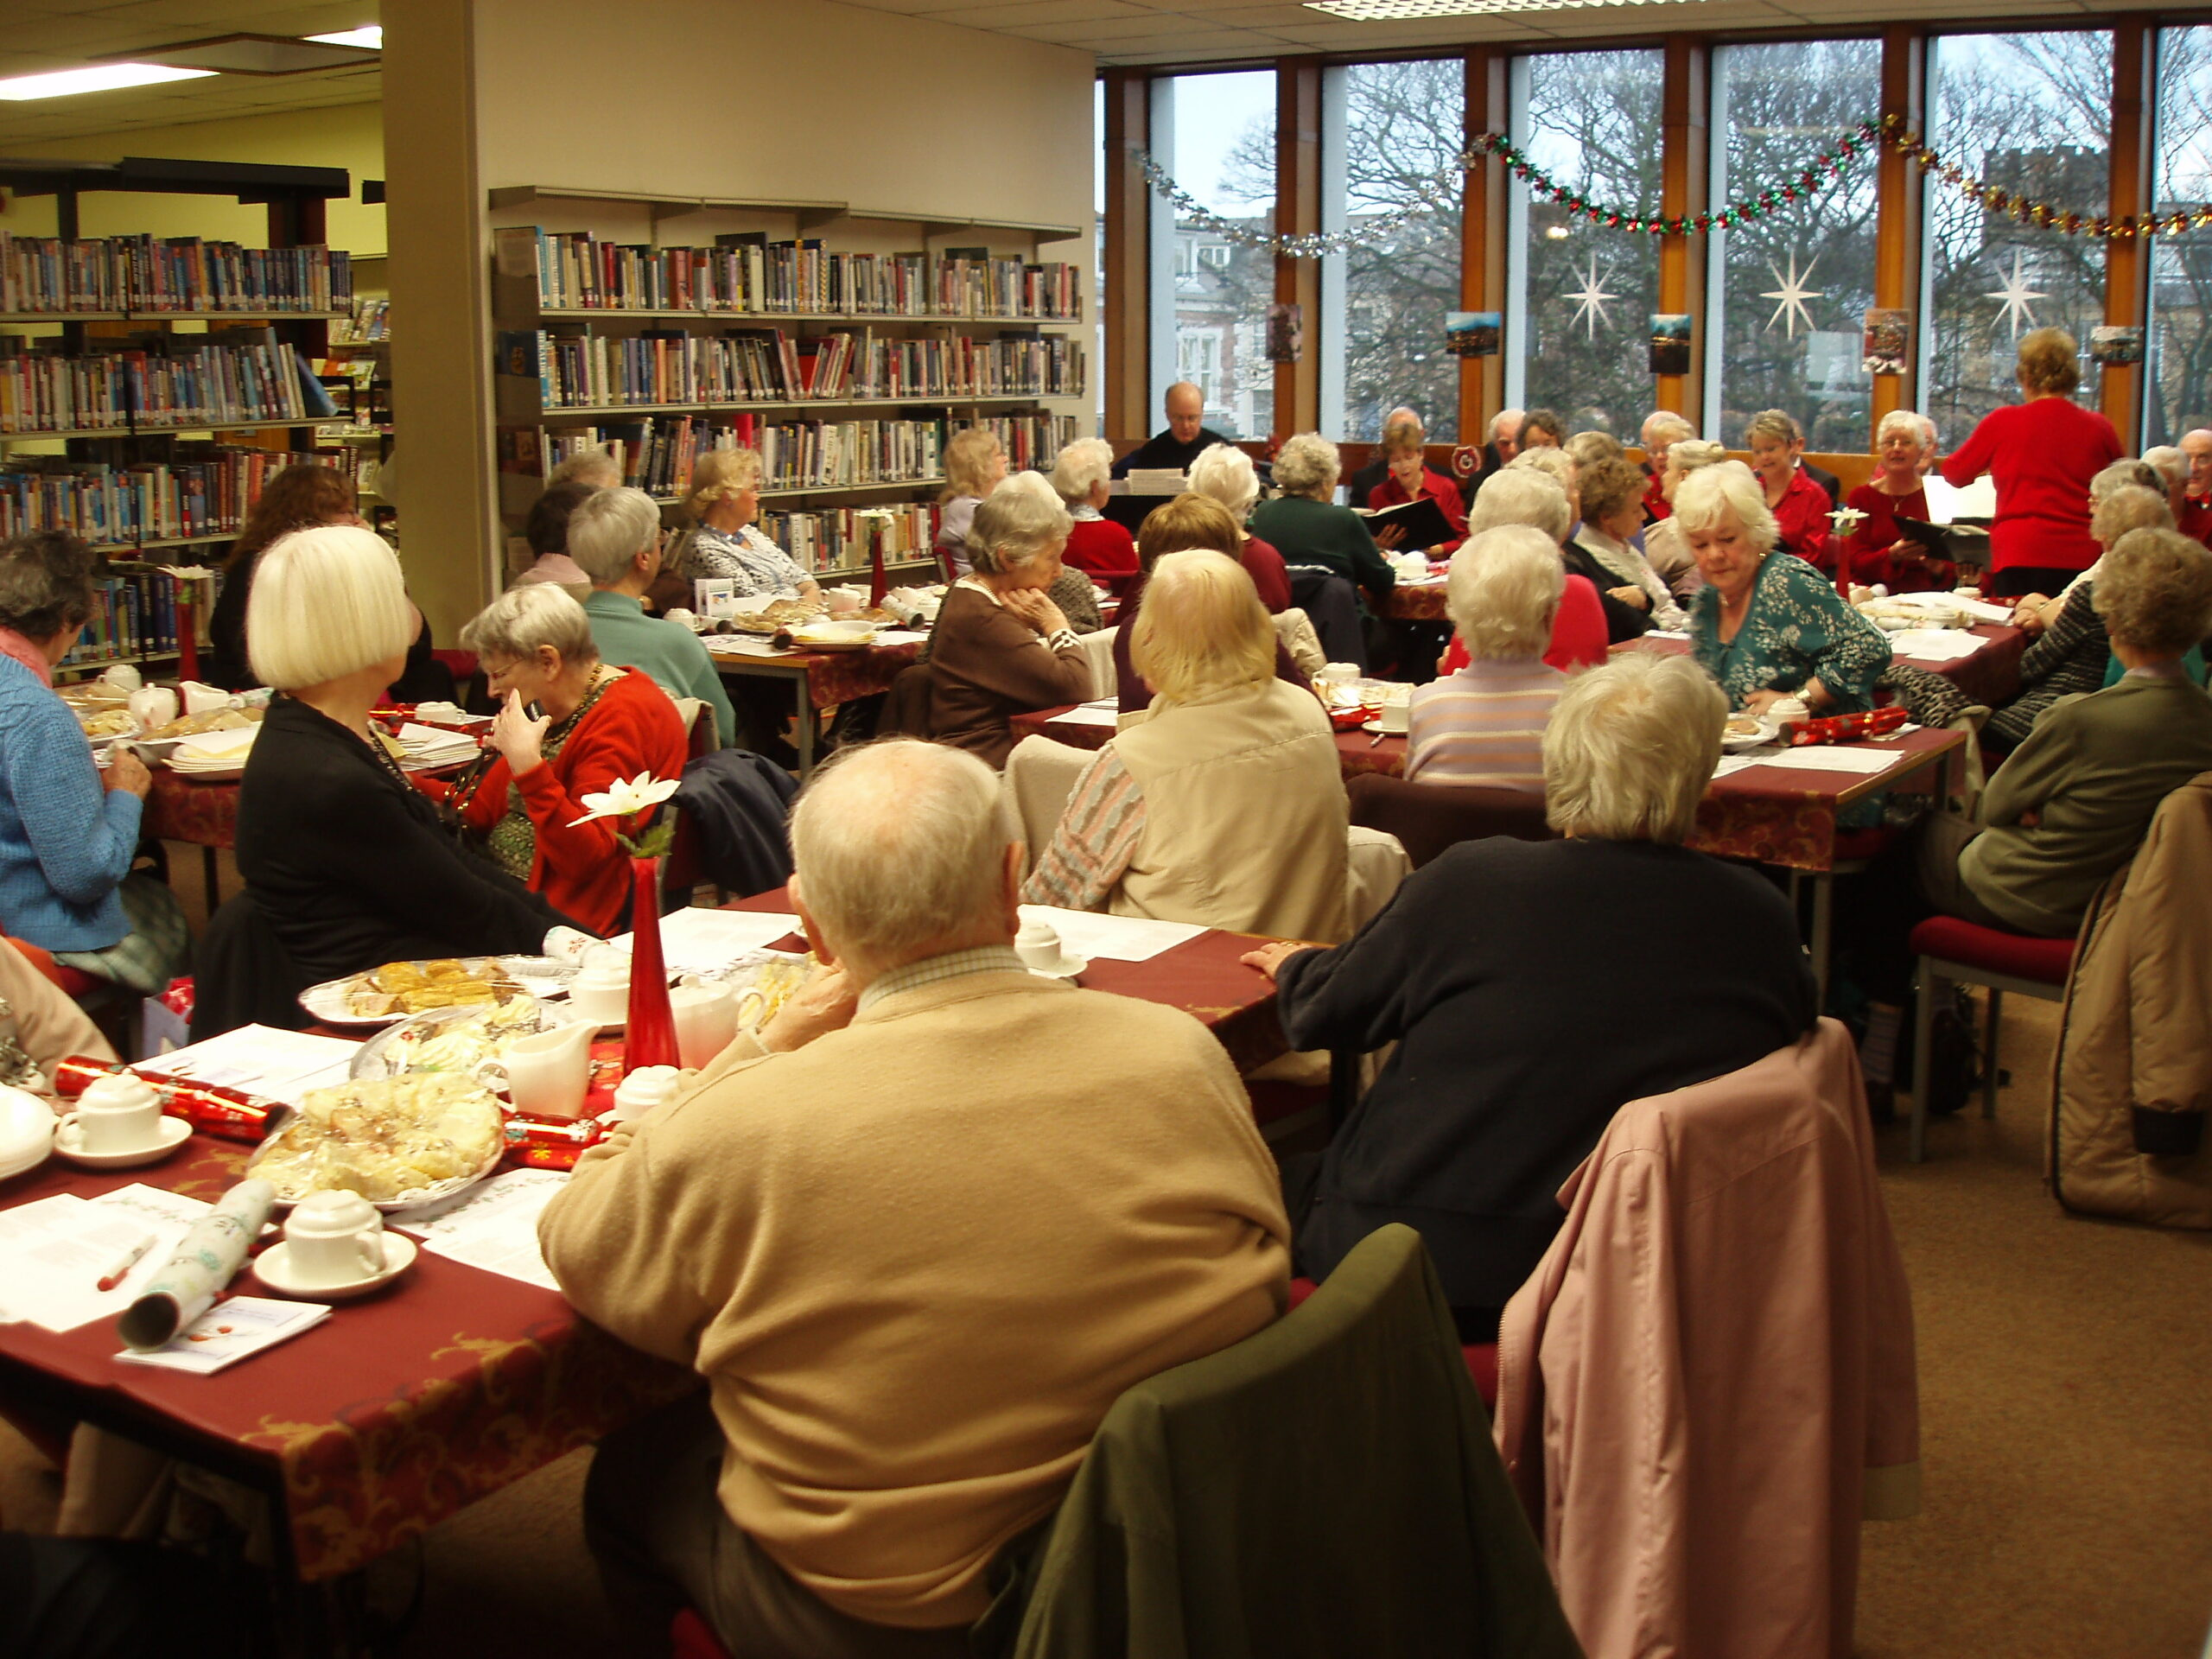 Christmas Past with the Library Club Members